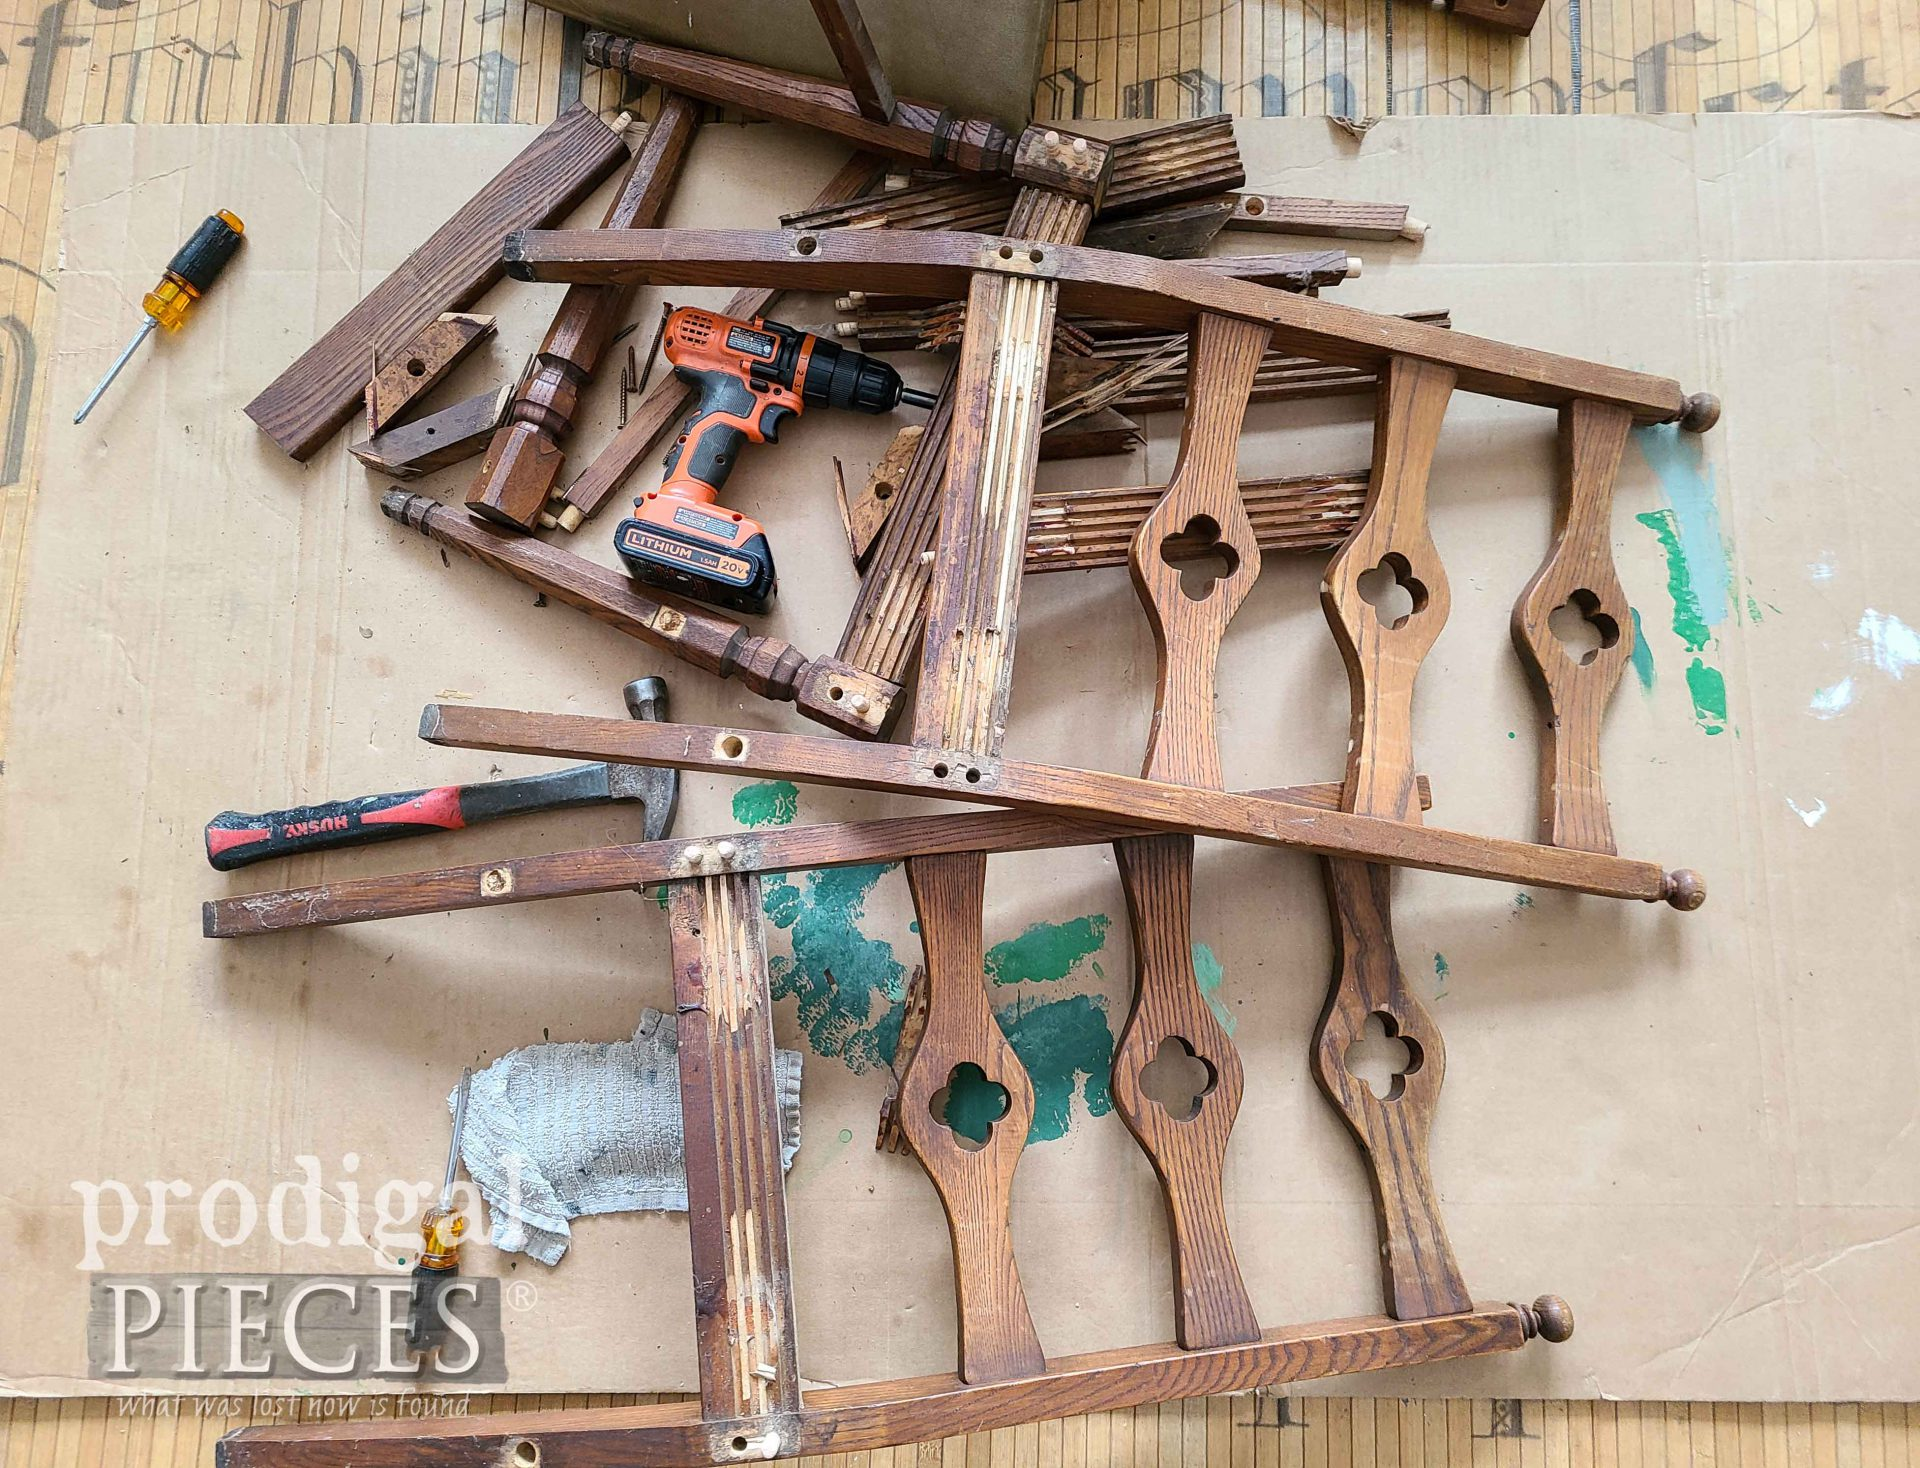 Disassembles Chair Parts for Salvaged Art | prodigalpieces.com